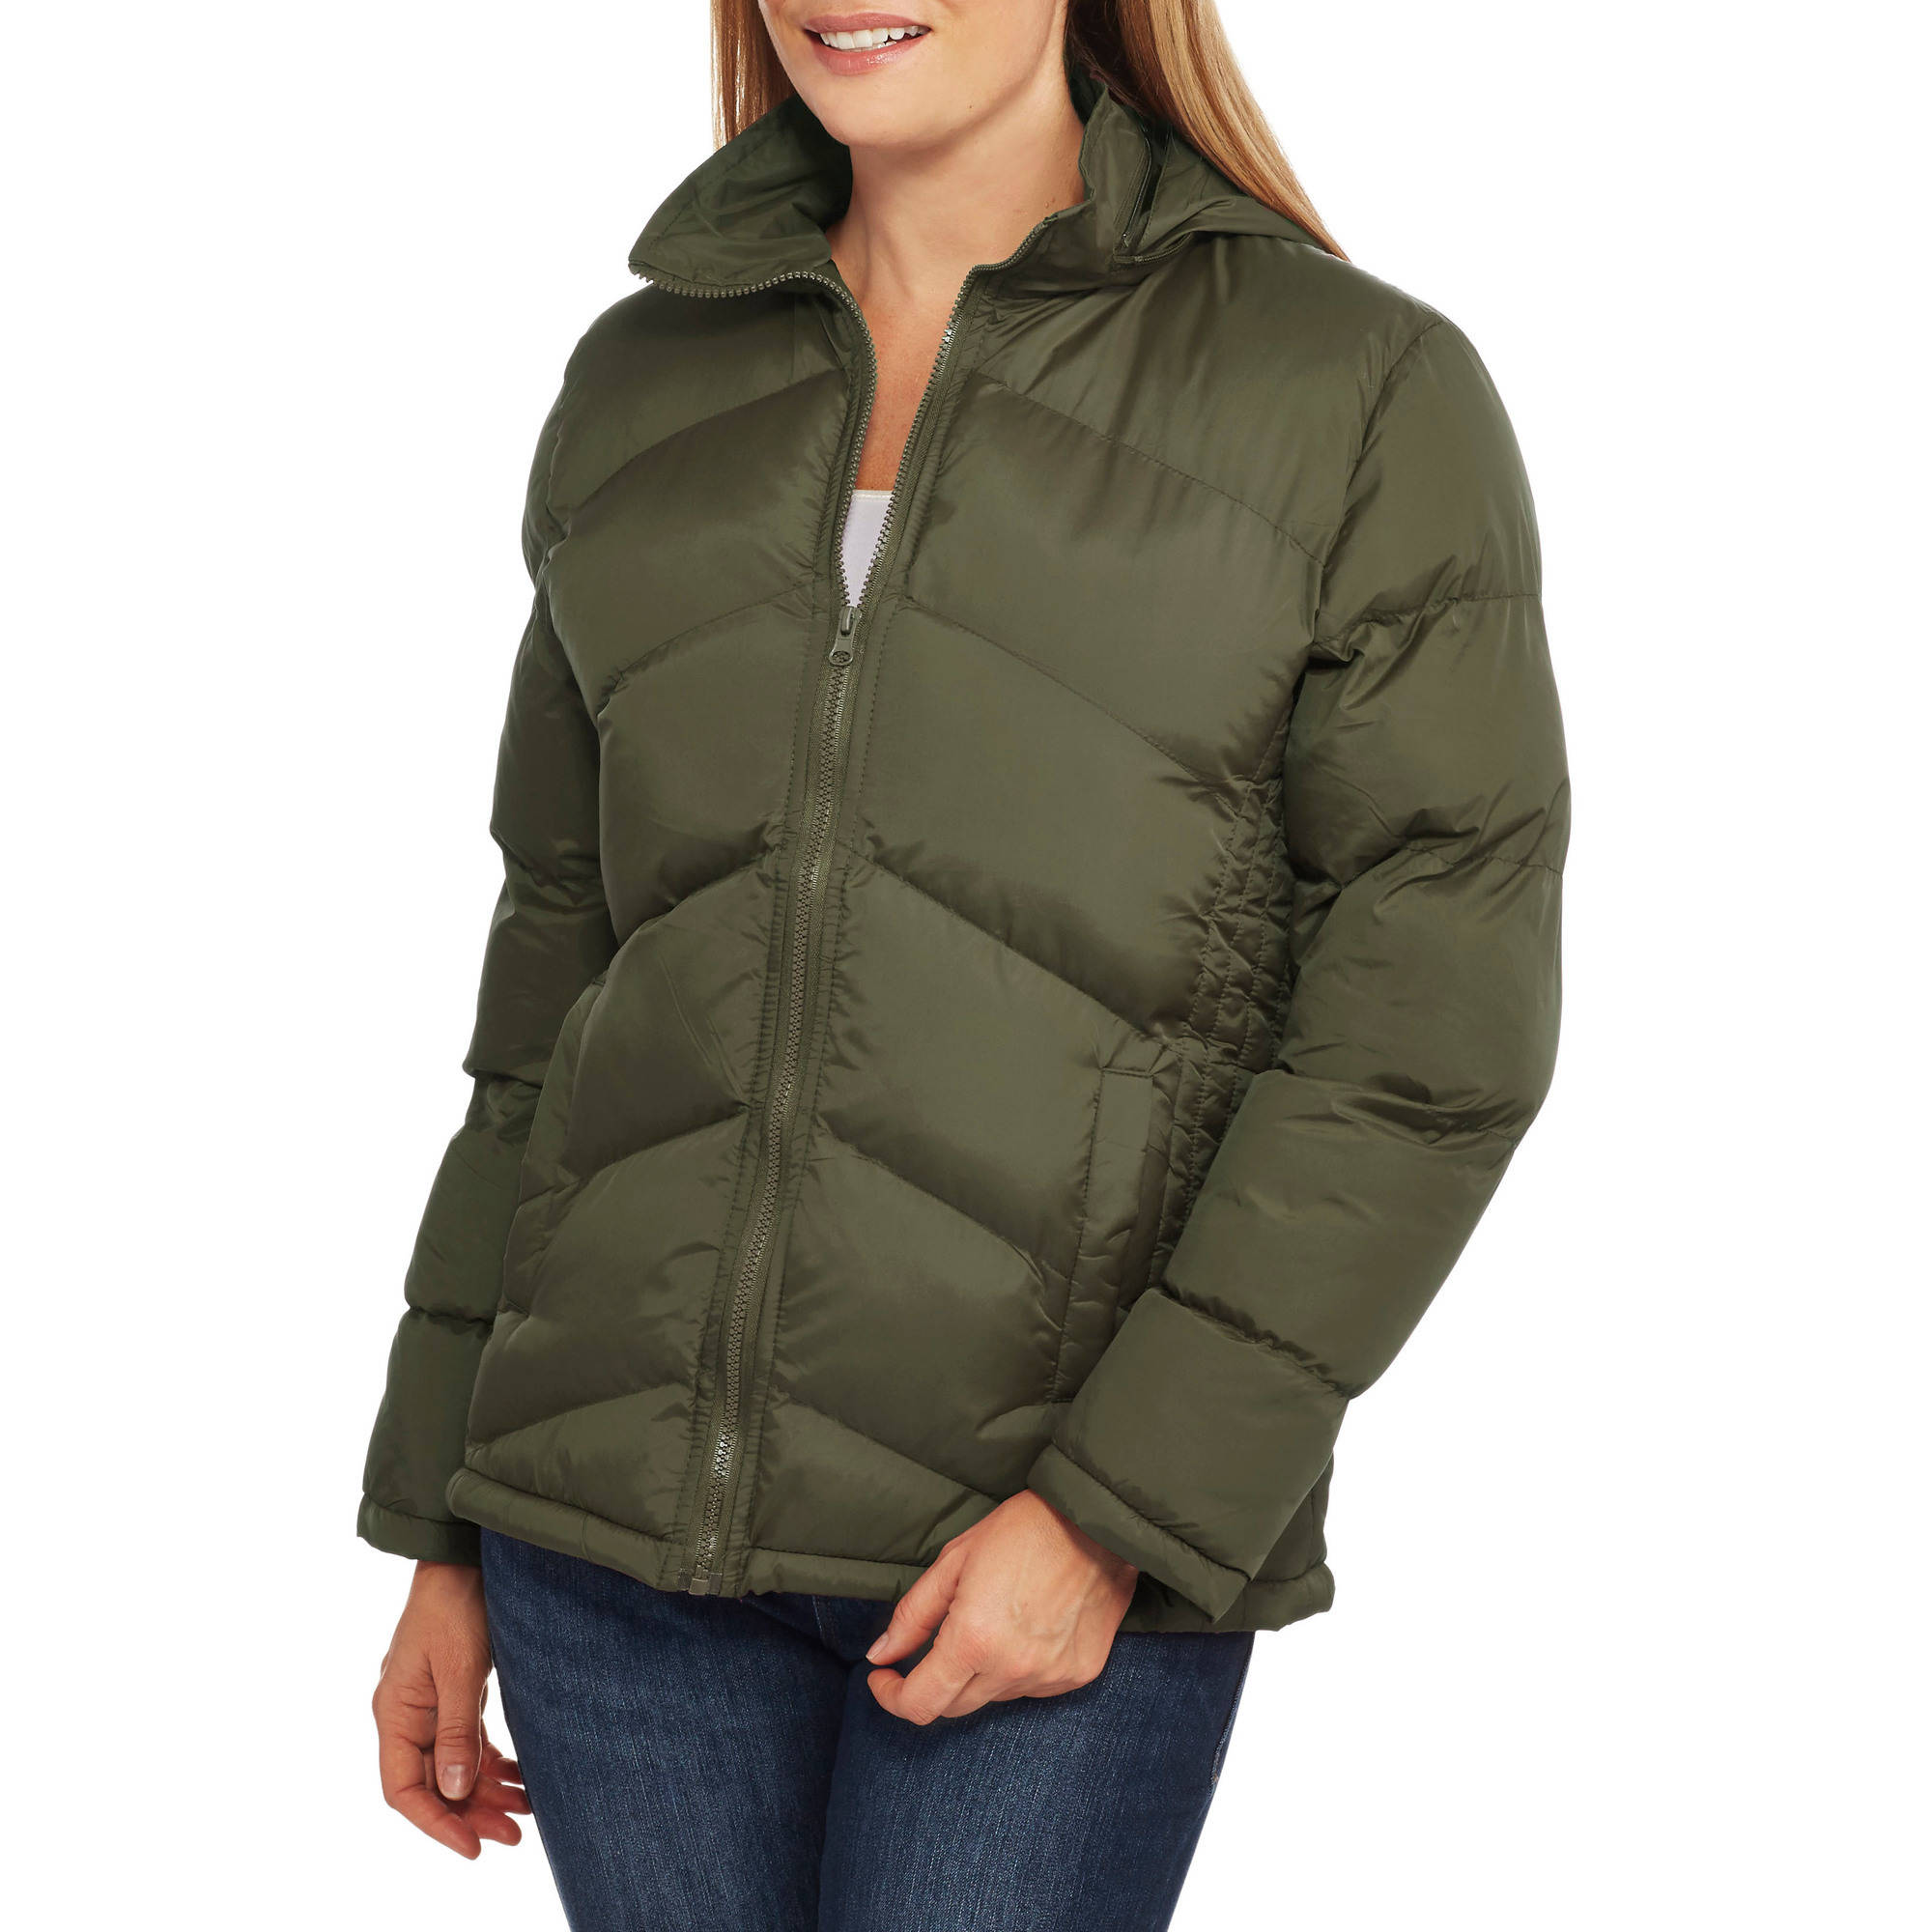 Climate Concepts Women's Chevron Quilted Jacket with Packable Hood